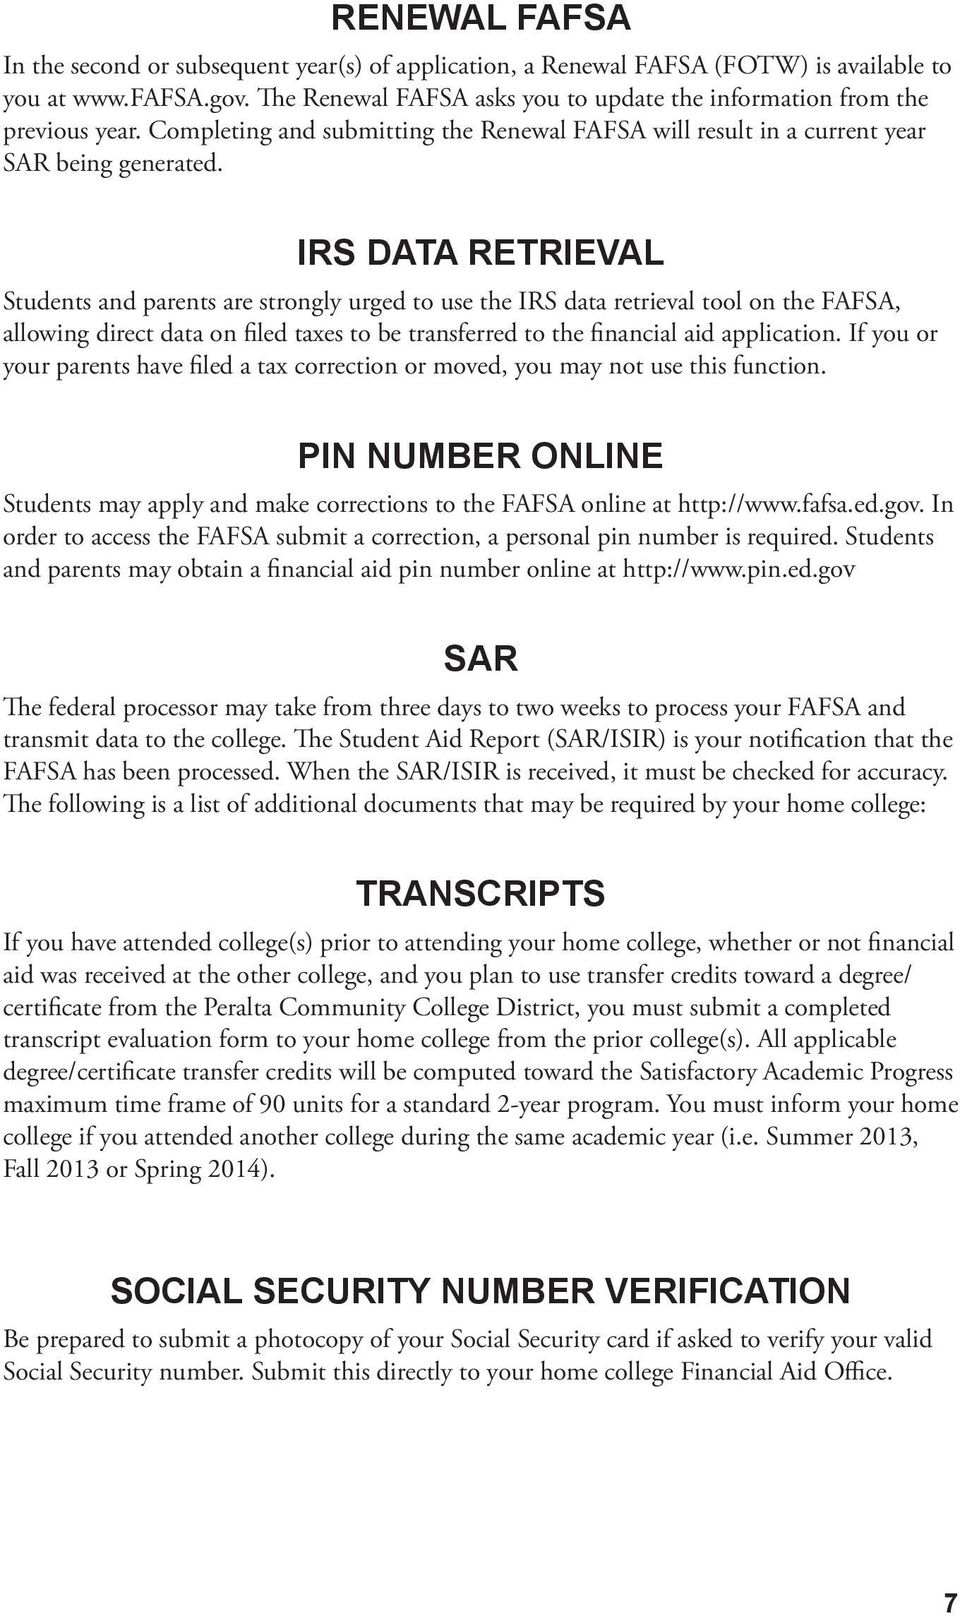 IRS DATA RETRIEVAL Students and parents are strongly urged to use the IRS data retrieval tool on the FAFSA, allowing direct data on filed taxes to be transferred to the financial aid application.